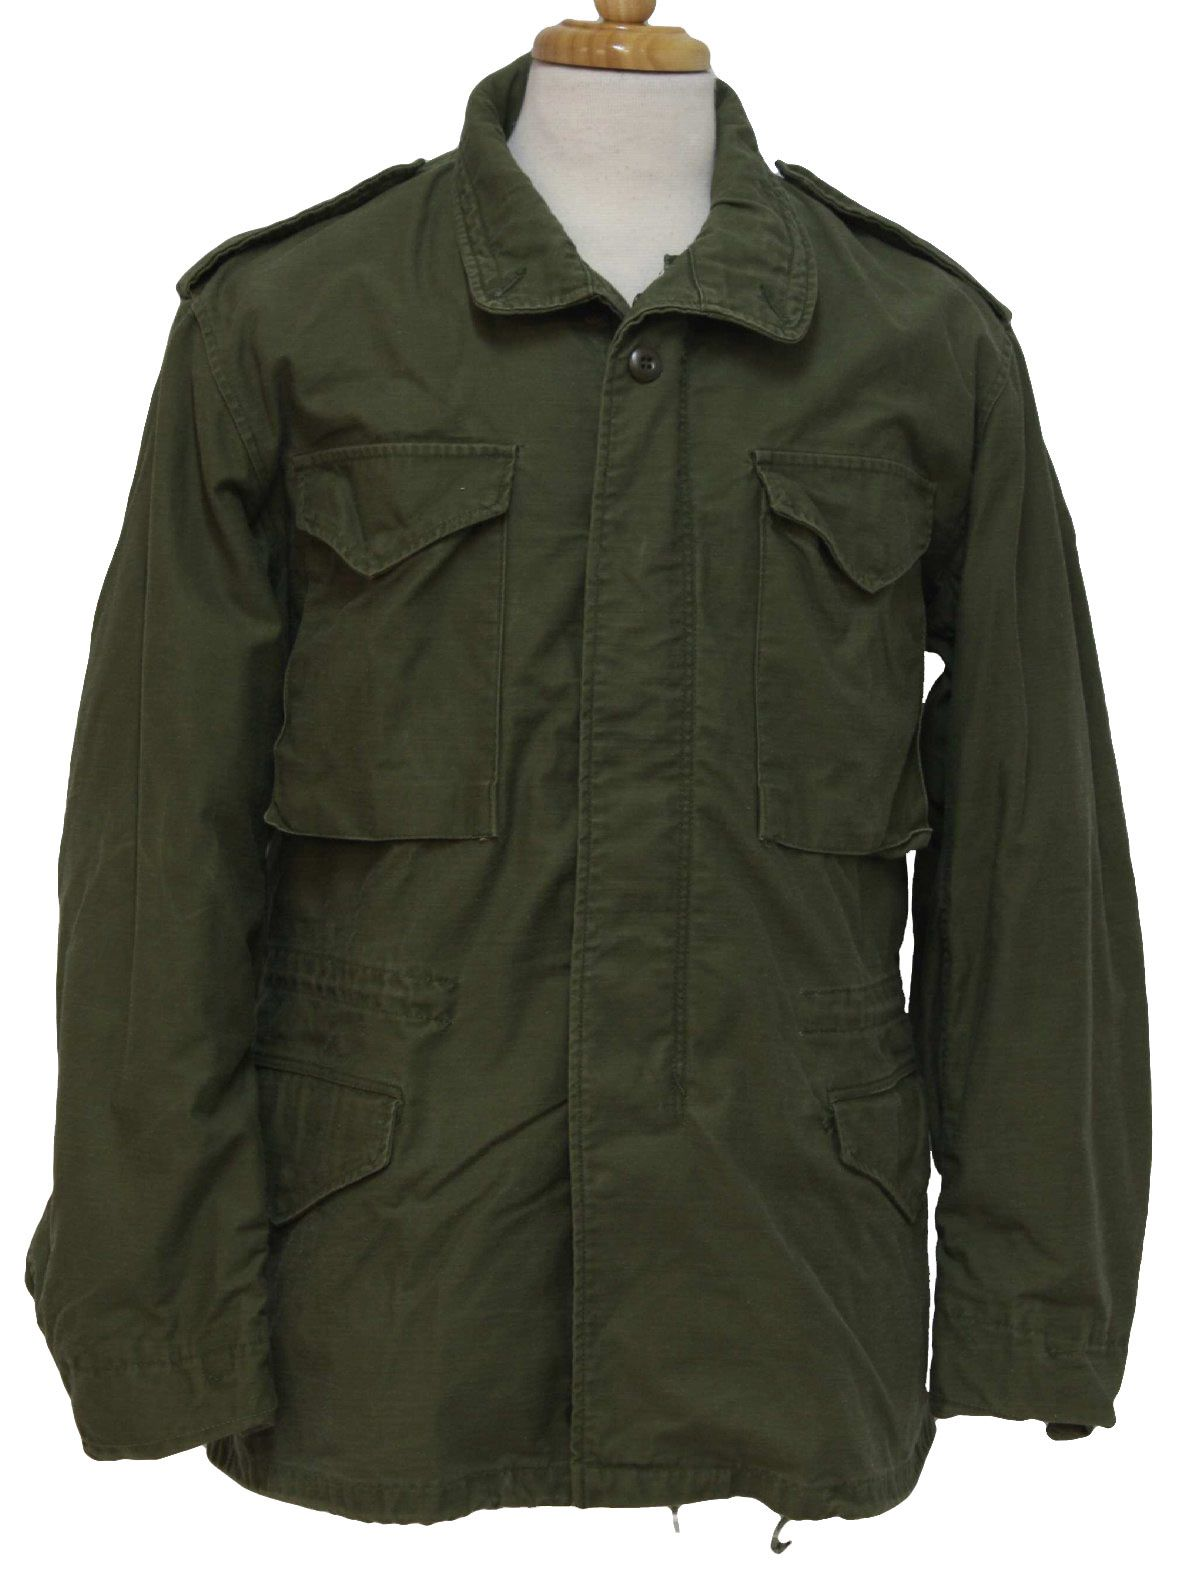 Mens 1970's military jacket 65Bd3qU